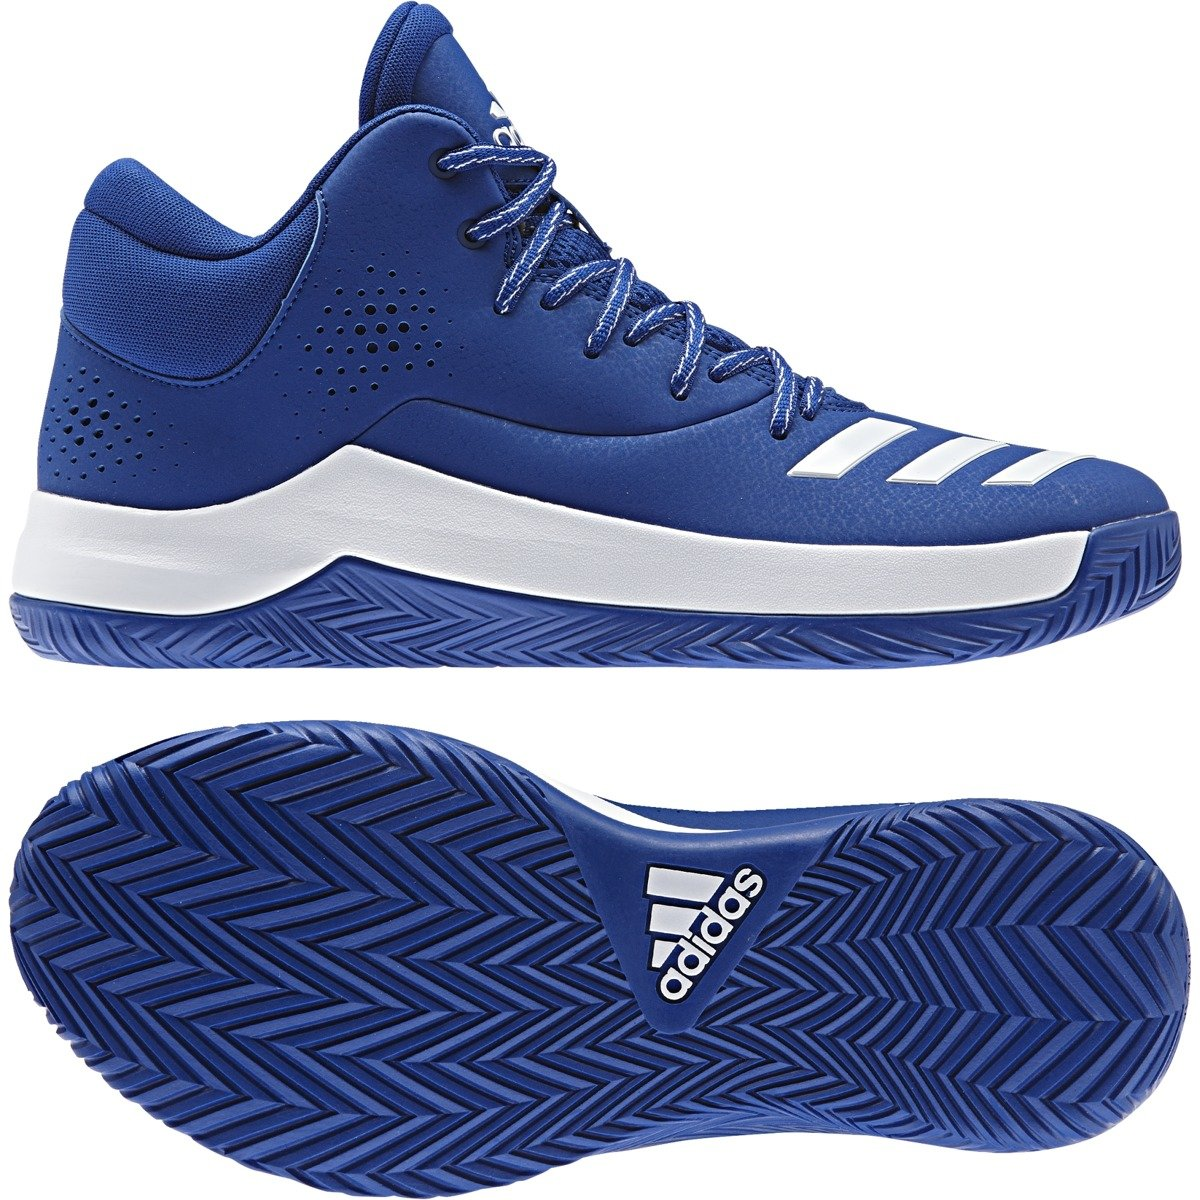 100% authentic 4542b 16d95 ... Buty Adidas Court Fury 2017 - BY4185 ...